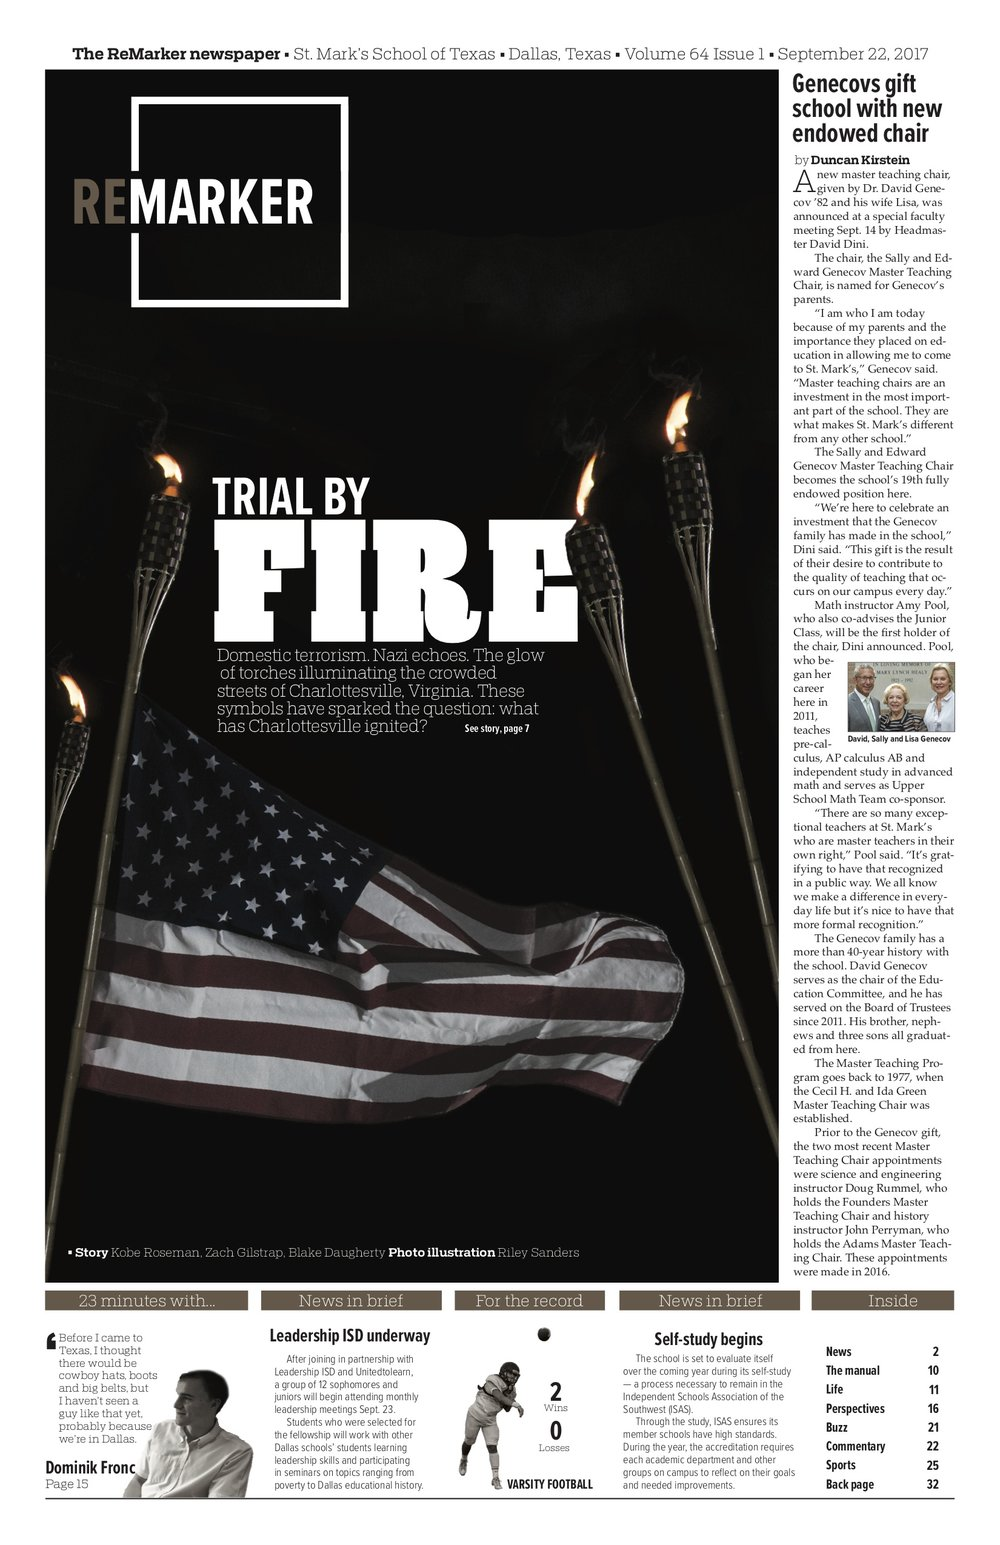 After the haunting events in Charlottesville, Virginia, this cover design attempted to capture the same ominous and foreboding feeling people in our community felt when they saw tiki-torch-bearing white nationalists march around a statue of Robert E. Lee Aug. 11. I also desaturated the colors of the American flag to point the reader to the headline and add to the page's dark mood.